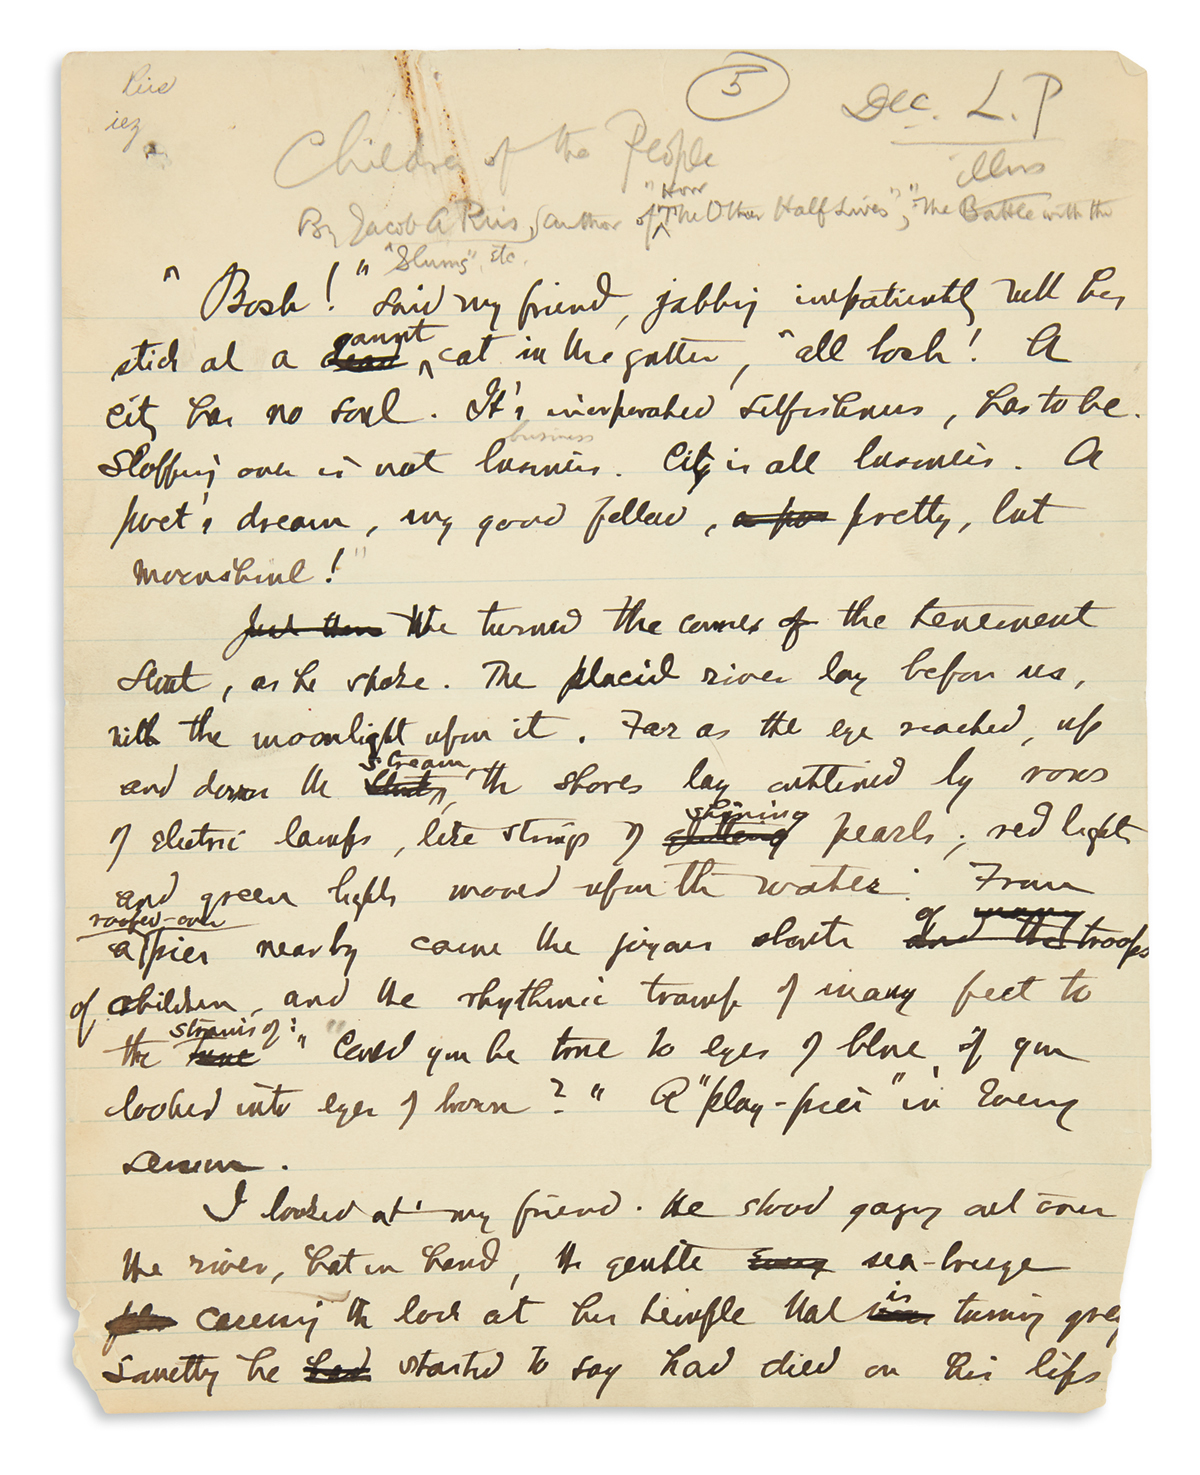 RIIS-JACOB-A-Autograph-Manuscript-Signed-in-the-byline-a-short-story-entitled-Children-of-the-People